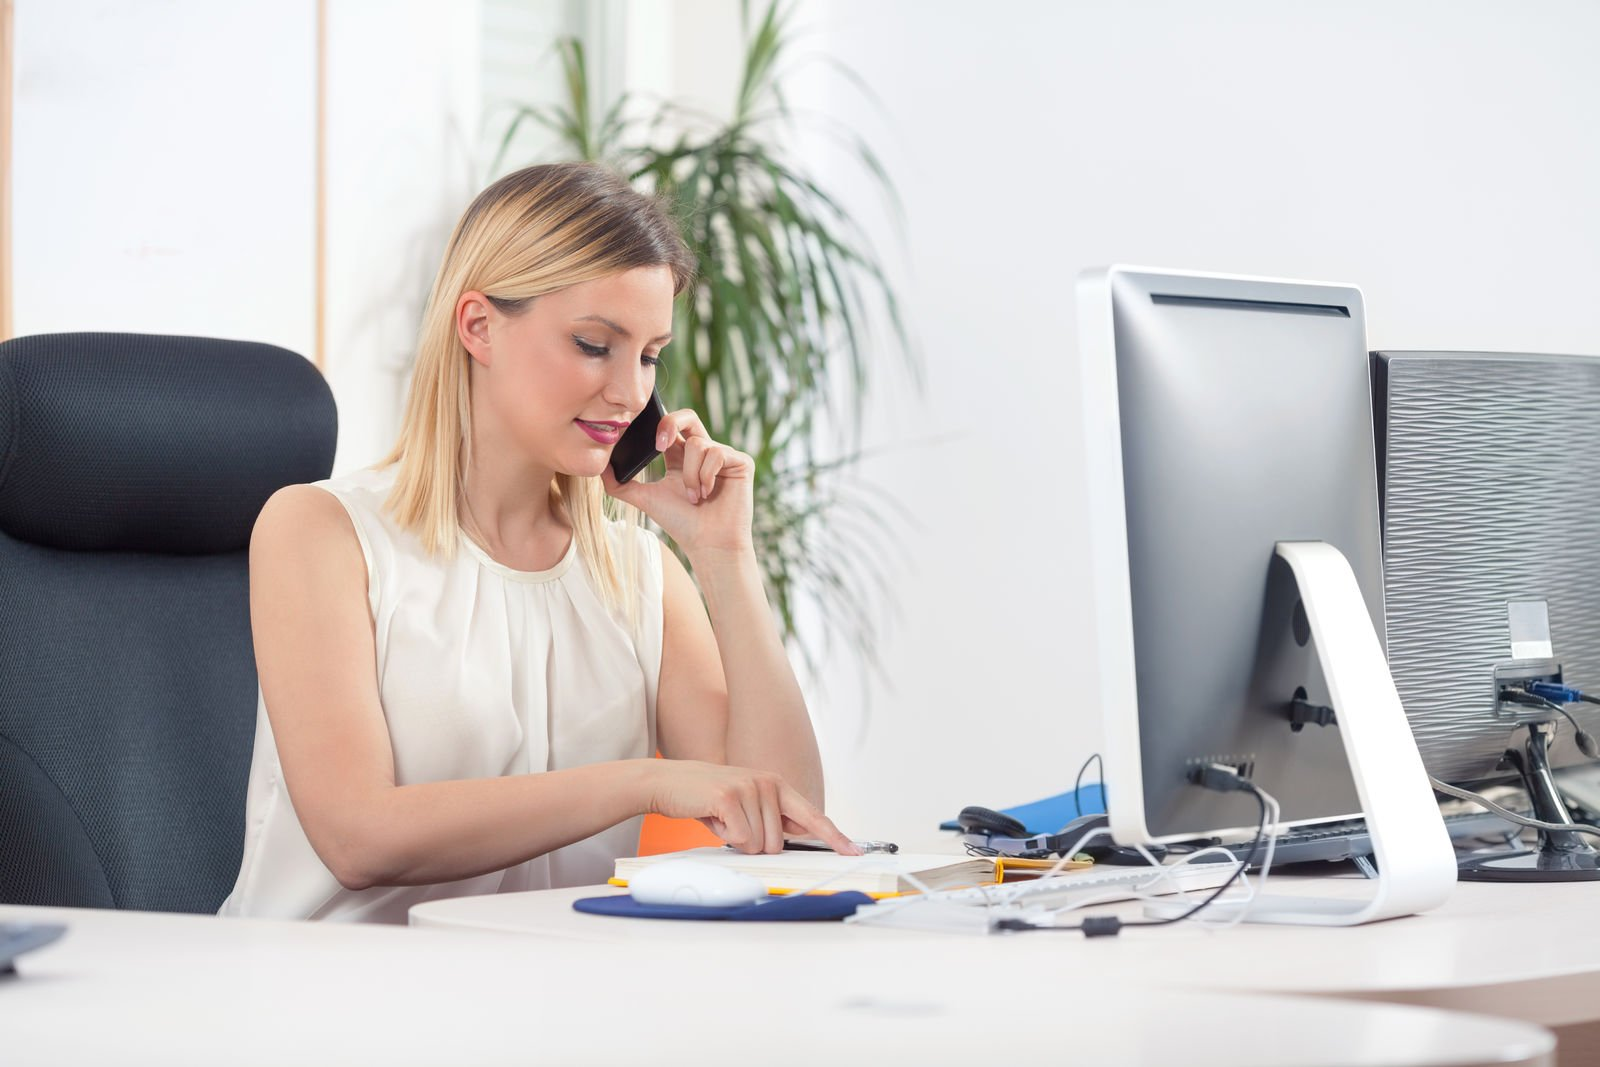 How much commission do car insurance agents make?